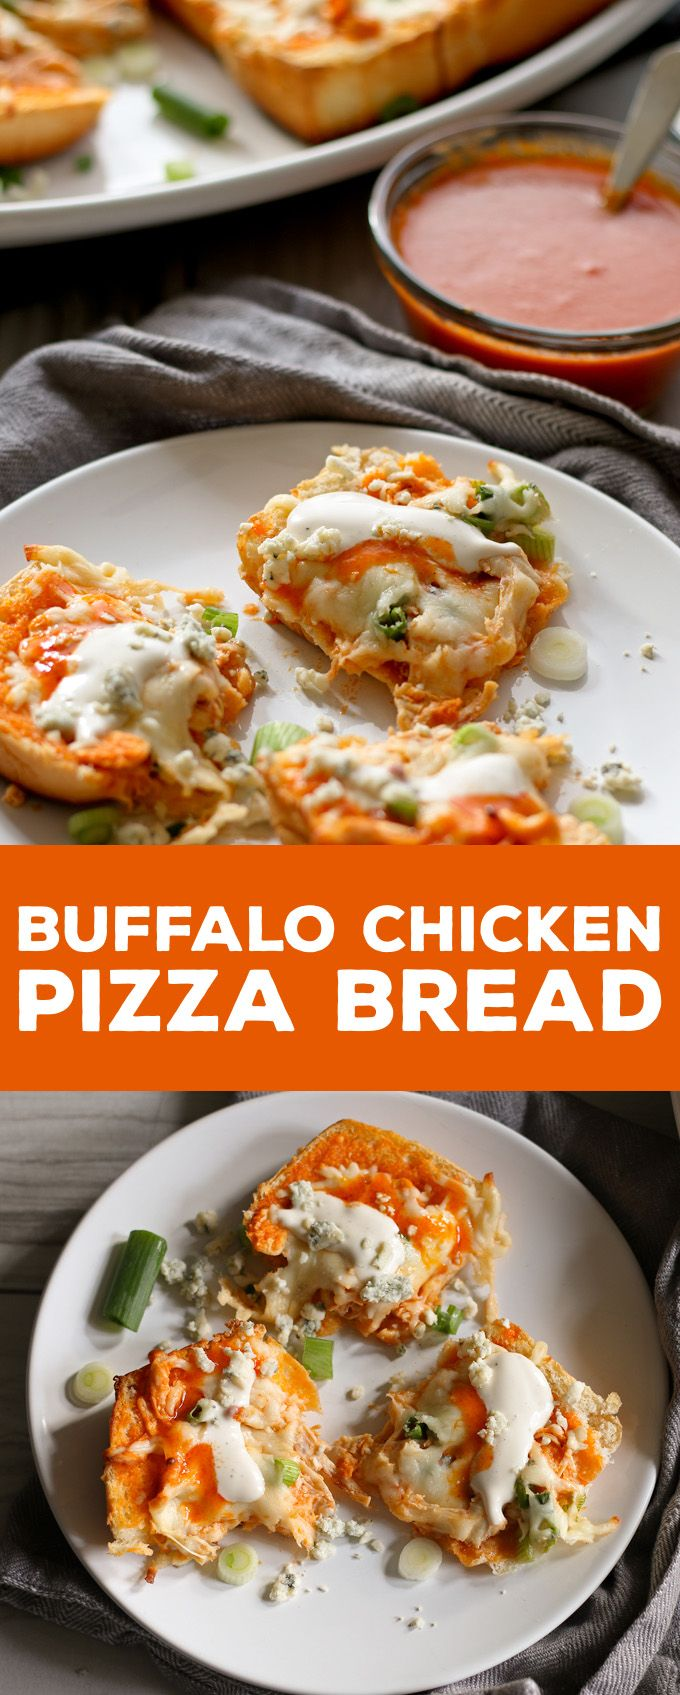 This buffalo chicken pizza bread recipe is going to be a hit at your next party! It's made with KING'S HAWAIIAN® Sweet Bread Rolls for easy eating and is the perfect appetizer or lunch! | honeyandbirch.com http://lynk.to/LU07S #HostWithKH #ad